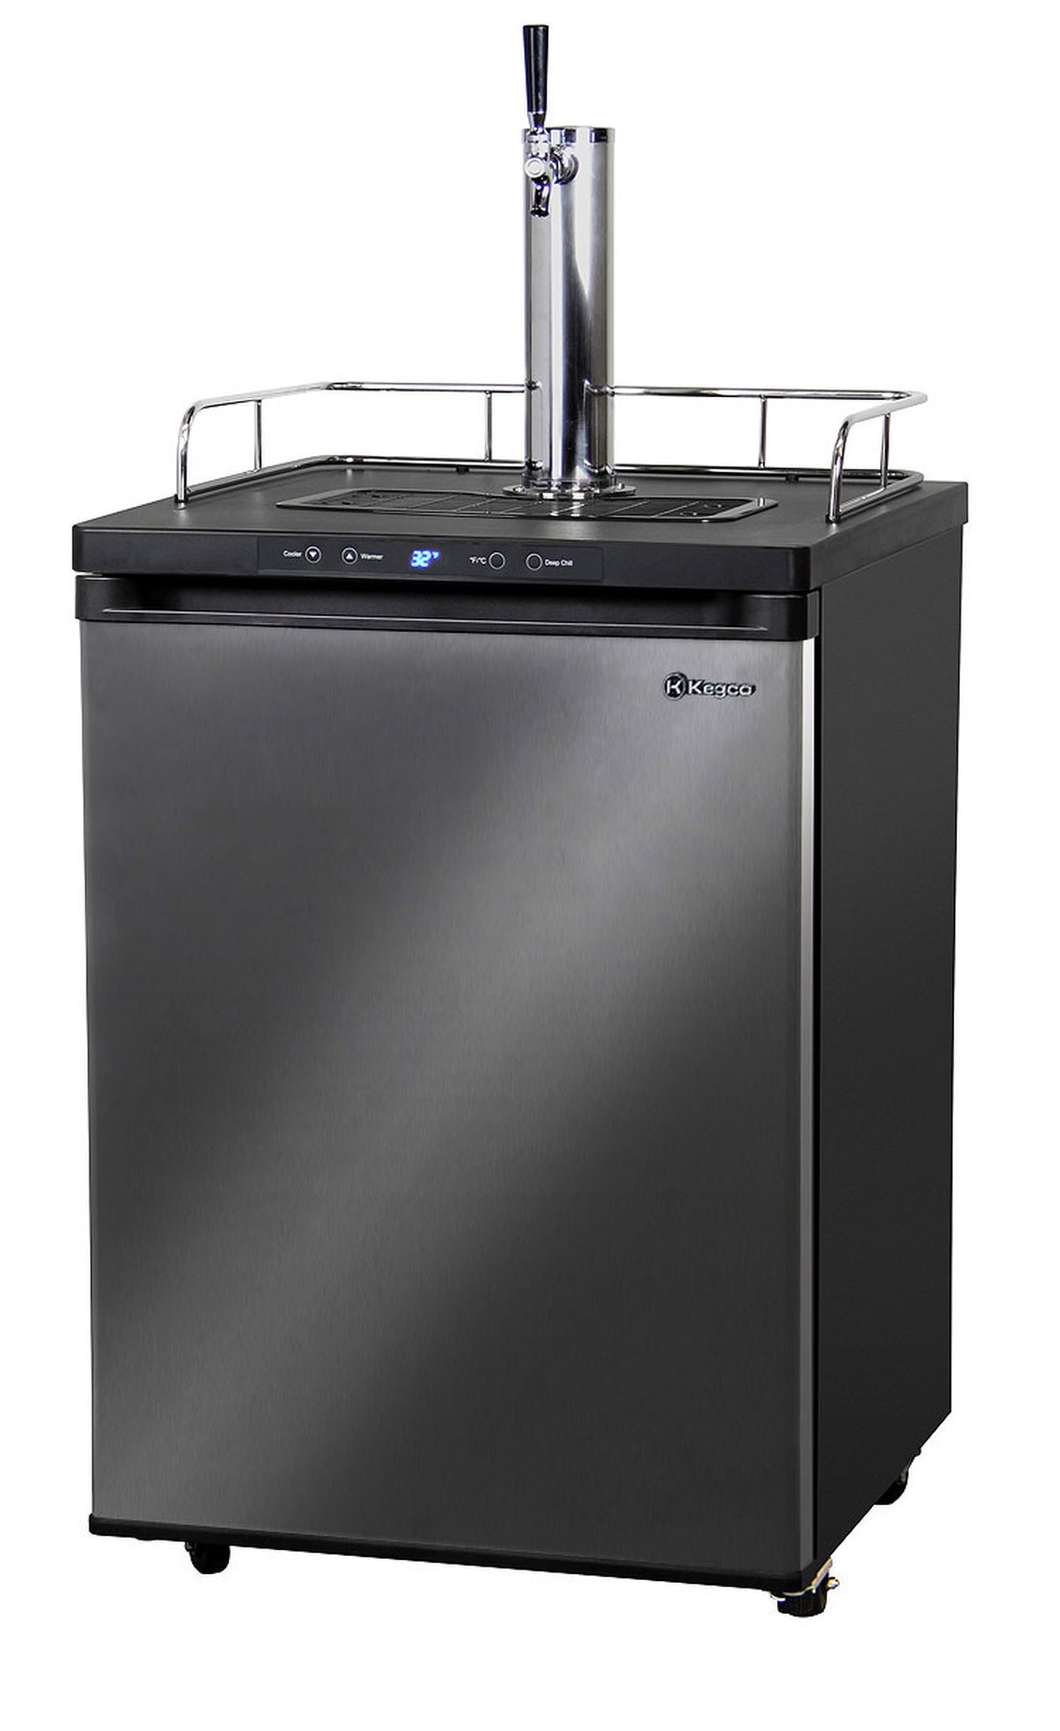 DIGITAL DRAFT BEER DISPENSER - SINGLE FAUCET - D SYSTEM - BLACK STAINLESS DOOR